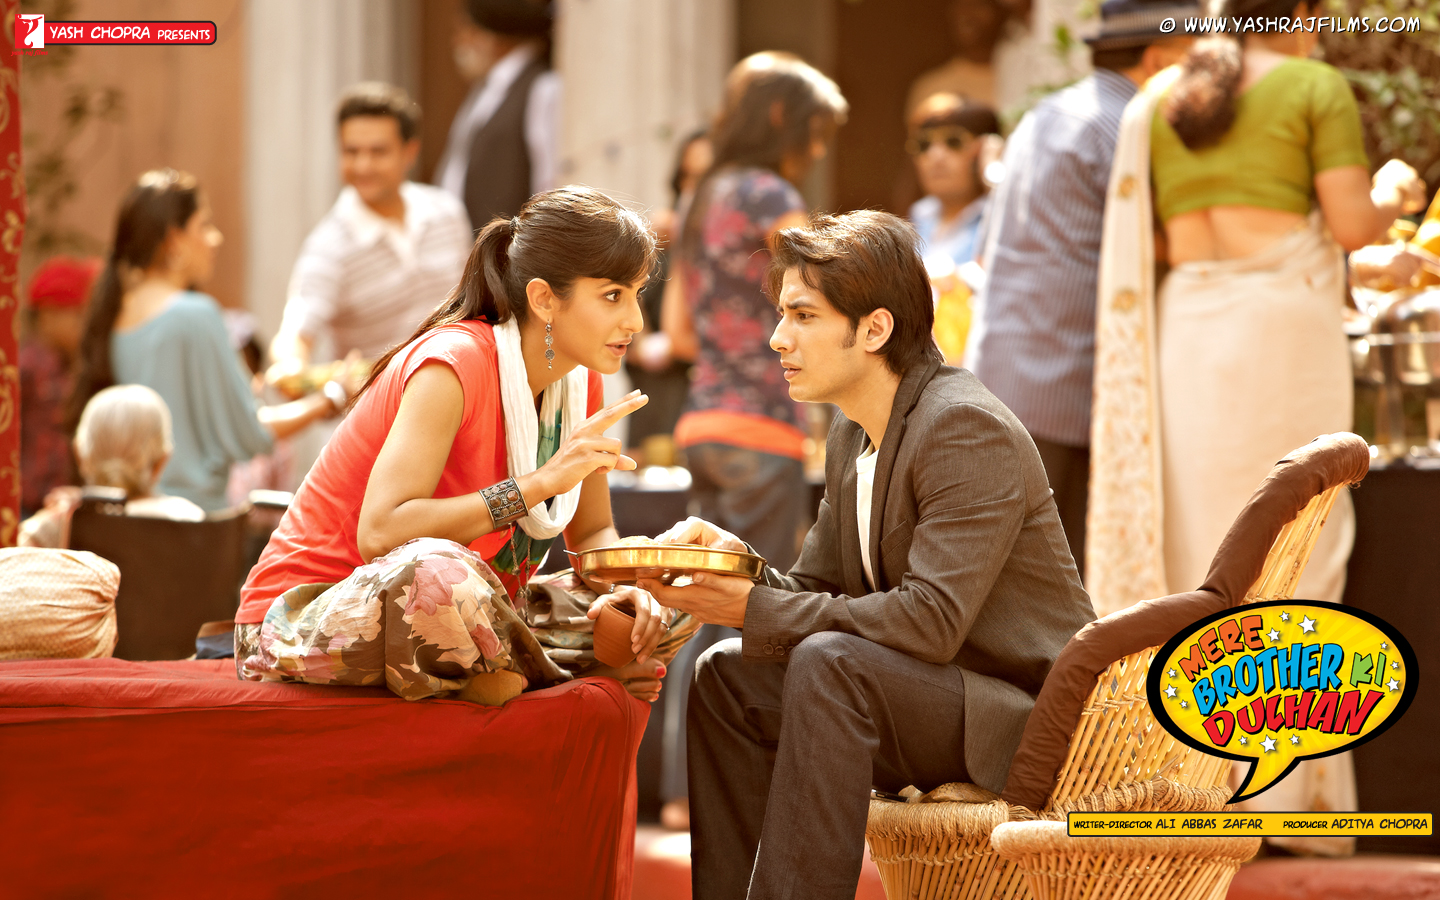 Ali Zafar With Katrina Kaif in Mere Brother Ke Dulhan